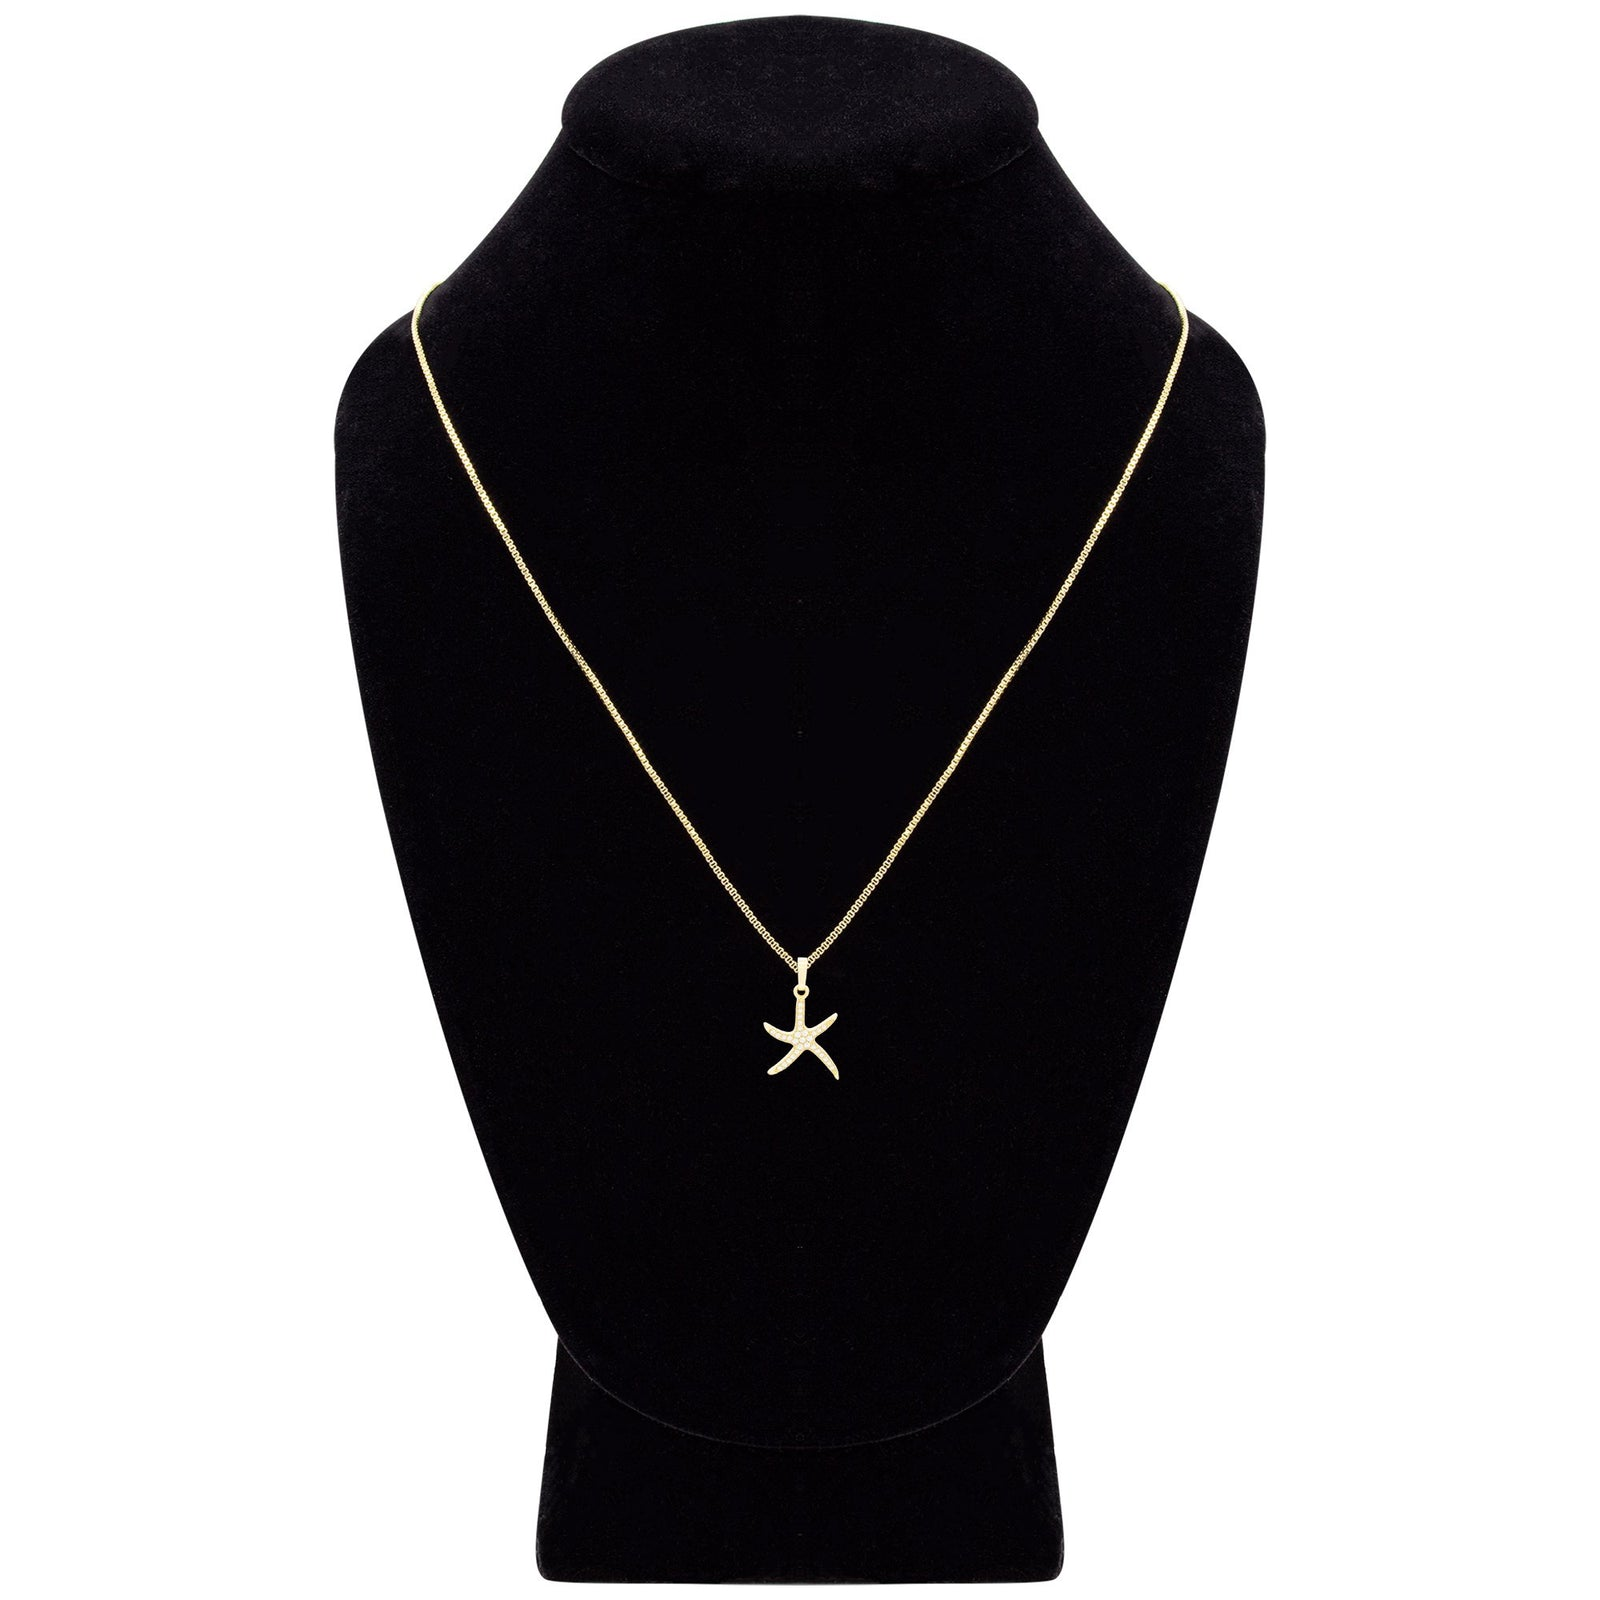 Ocean Starfish Cubic Zirconia Pendant With Necklace Set 14K Gold Filled